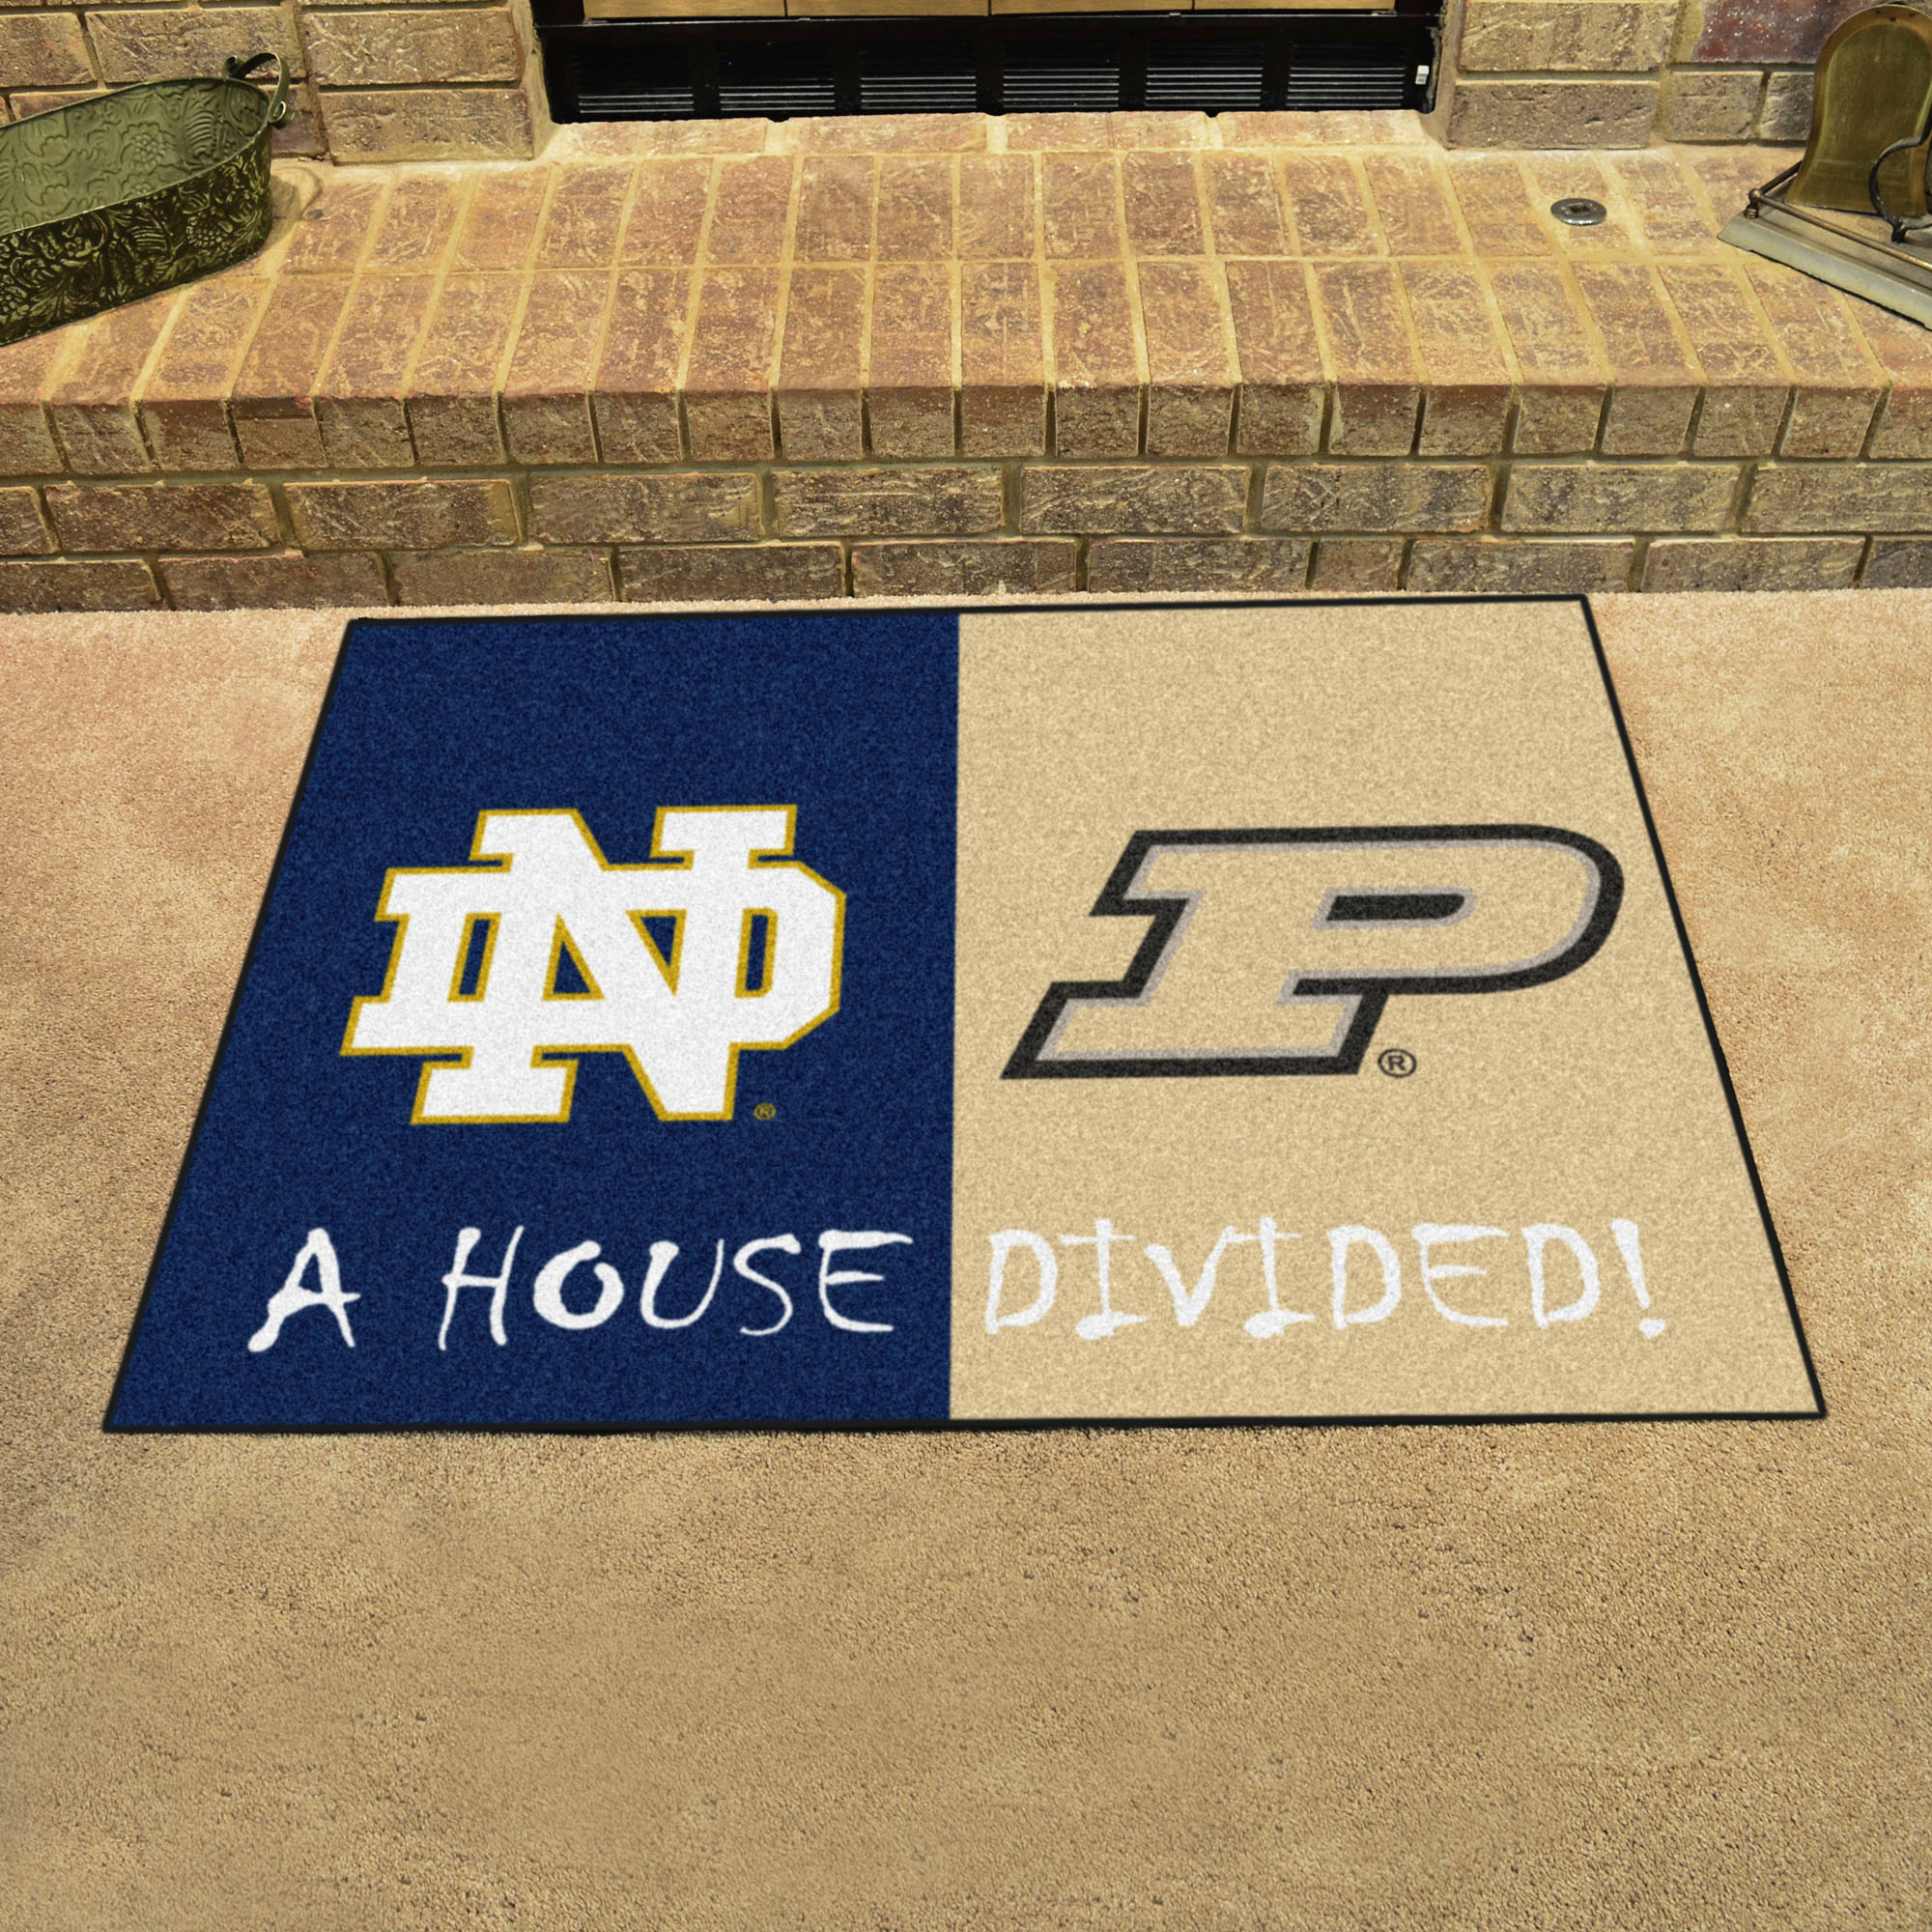 NCAA House Divided Rivalry Rug Notre Dame Fighting Irish - Purdue Boilermakers